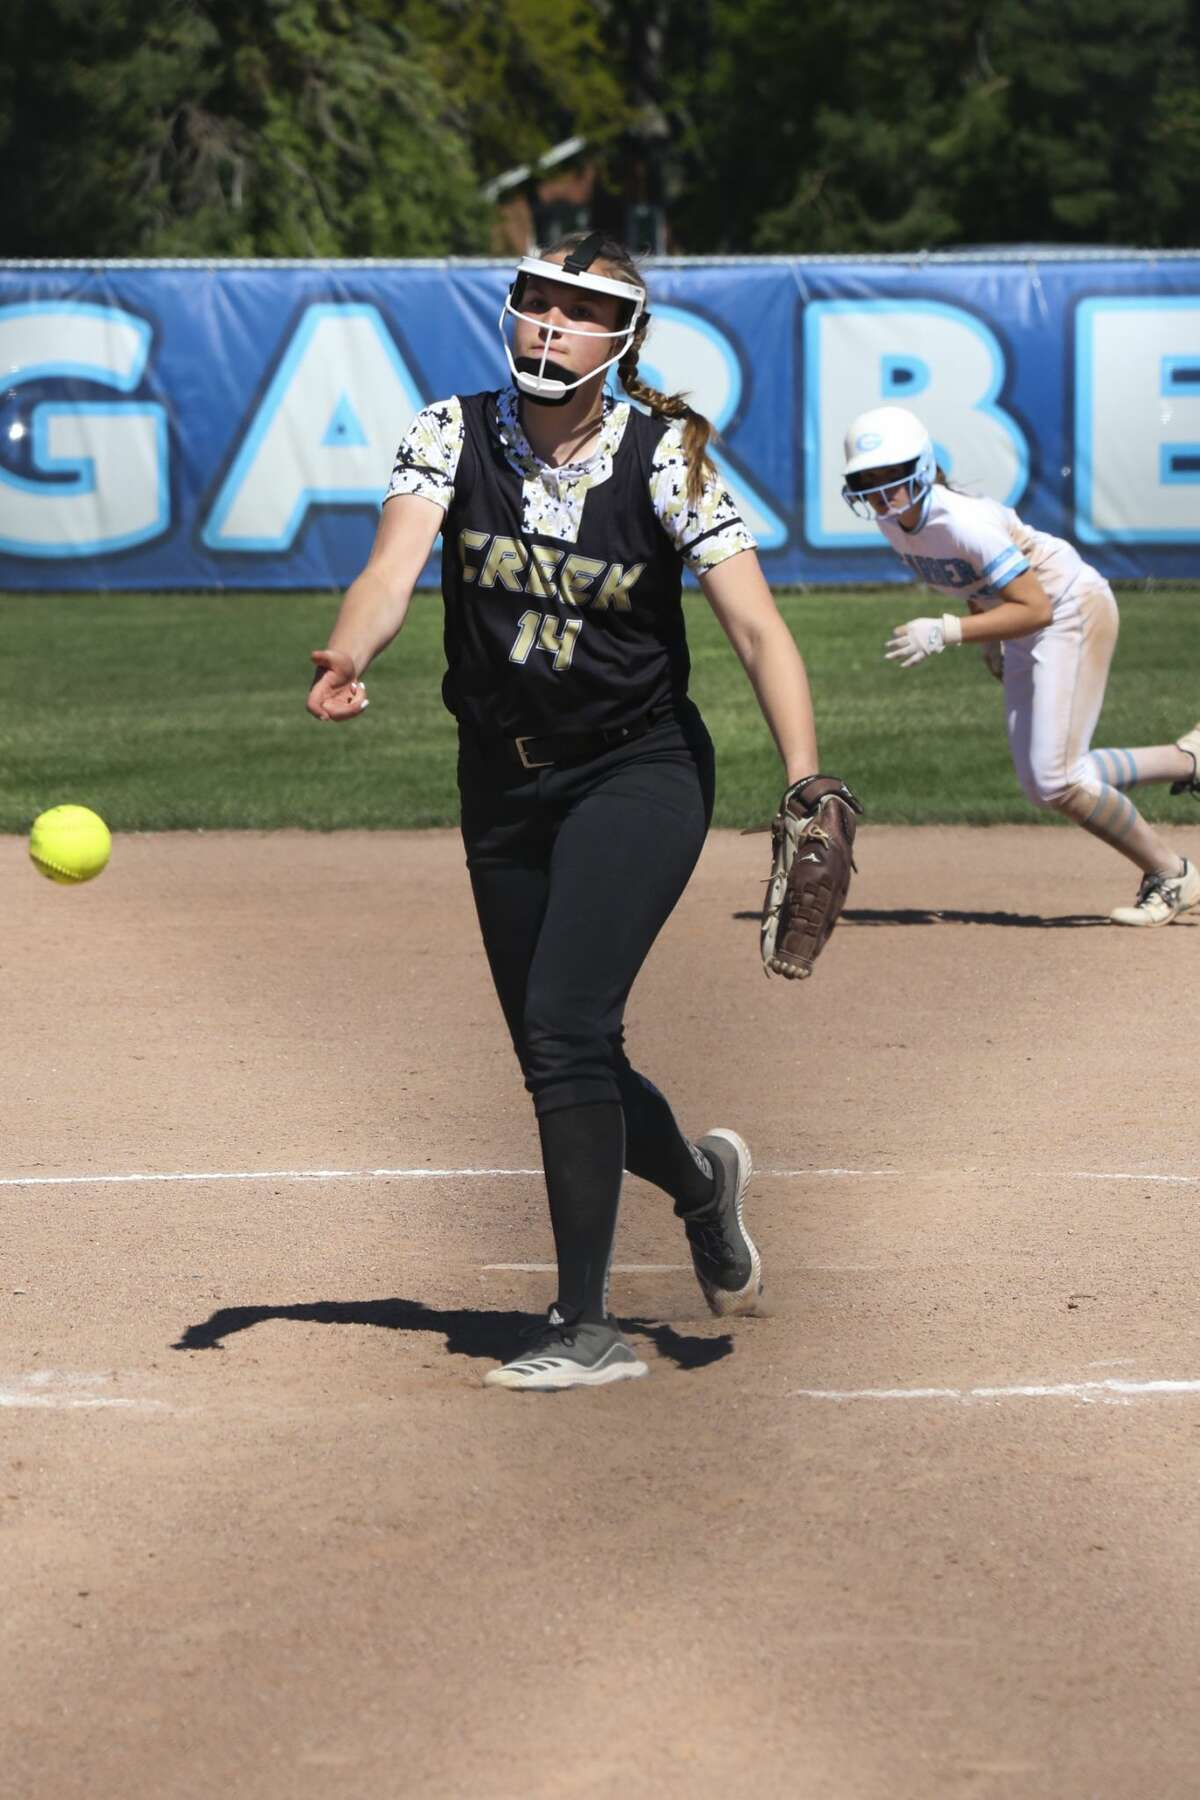 Bullock Creek's Heidi Nagel pitches the ball during the Lancers' game against Garber Saturday, June 5, 2021 at Garber High School. (Doug Julian/for the Daily News)